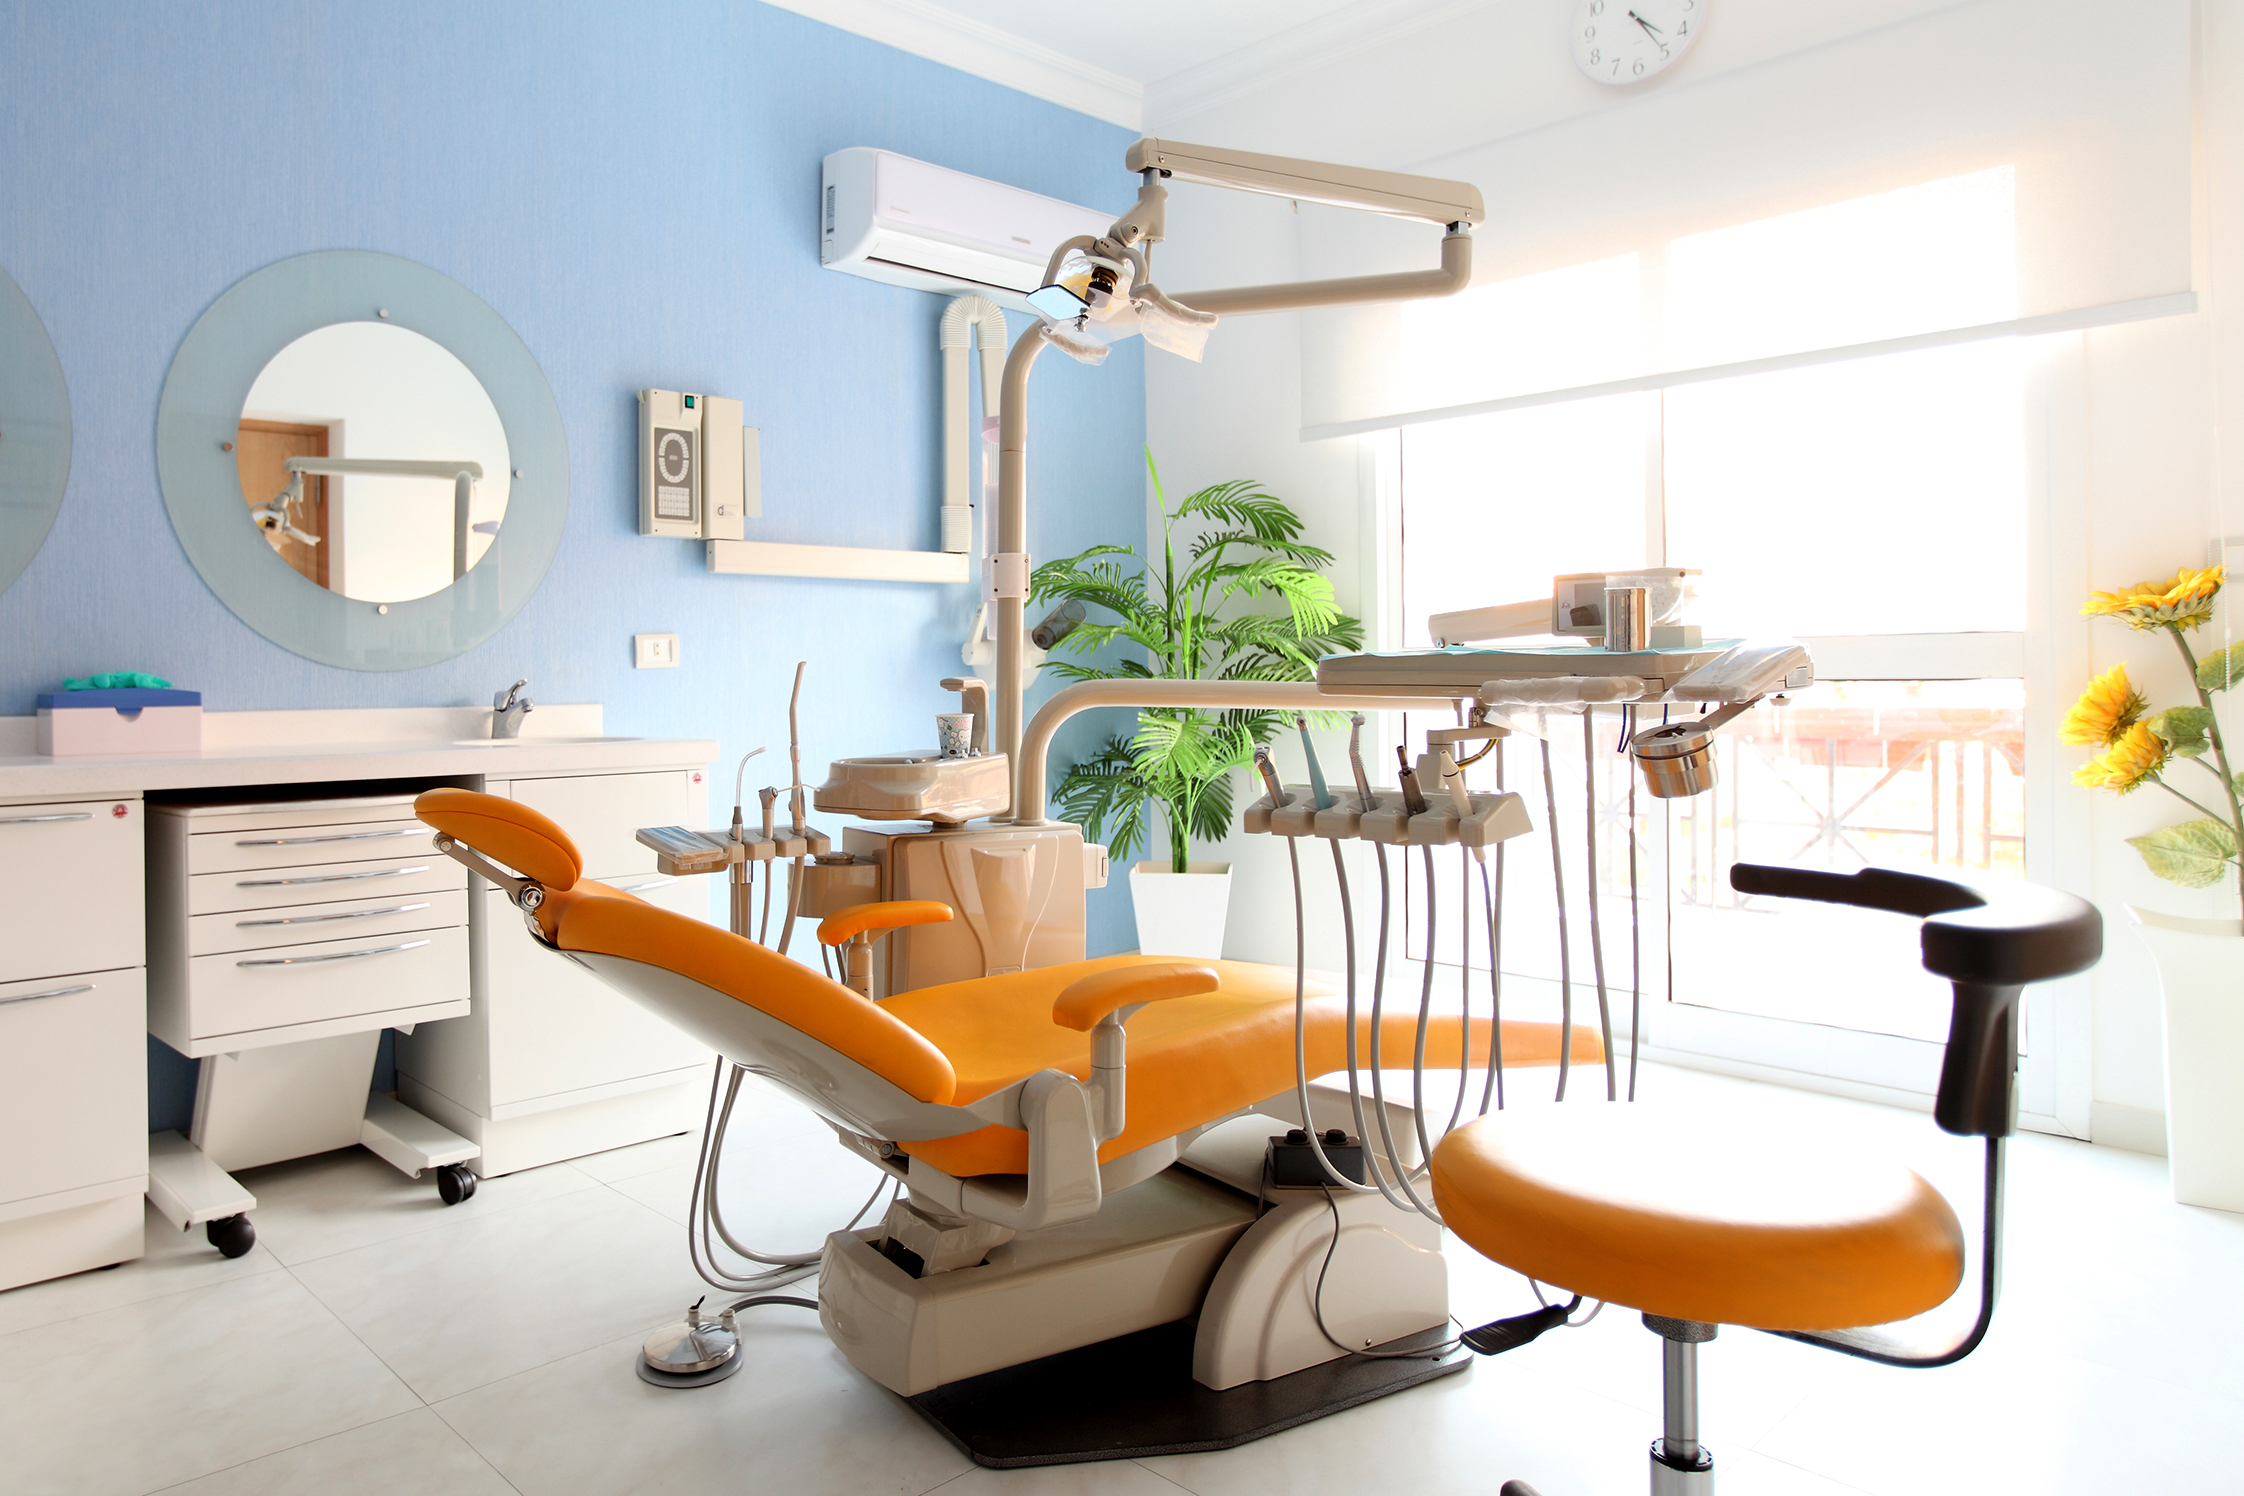 Ahmad El Souda Dental Clinic